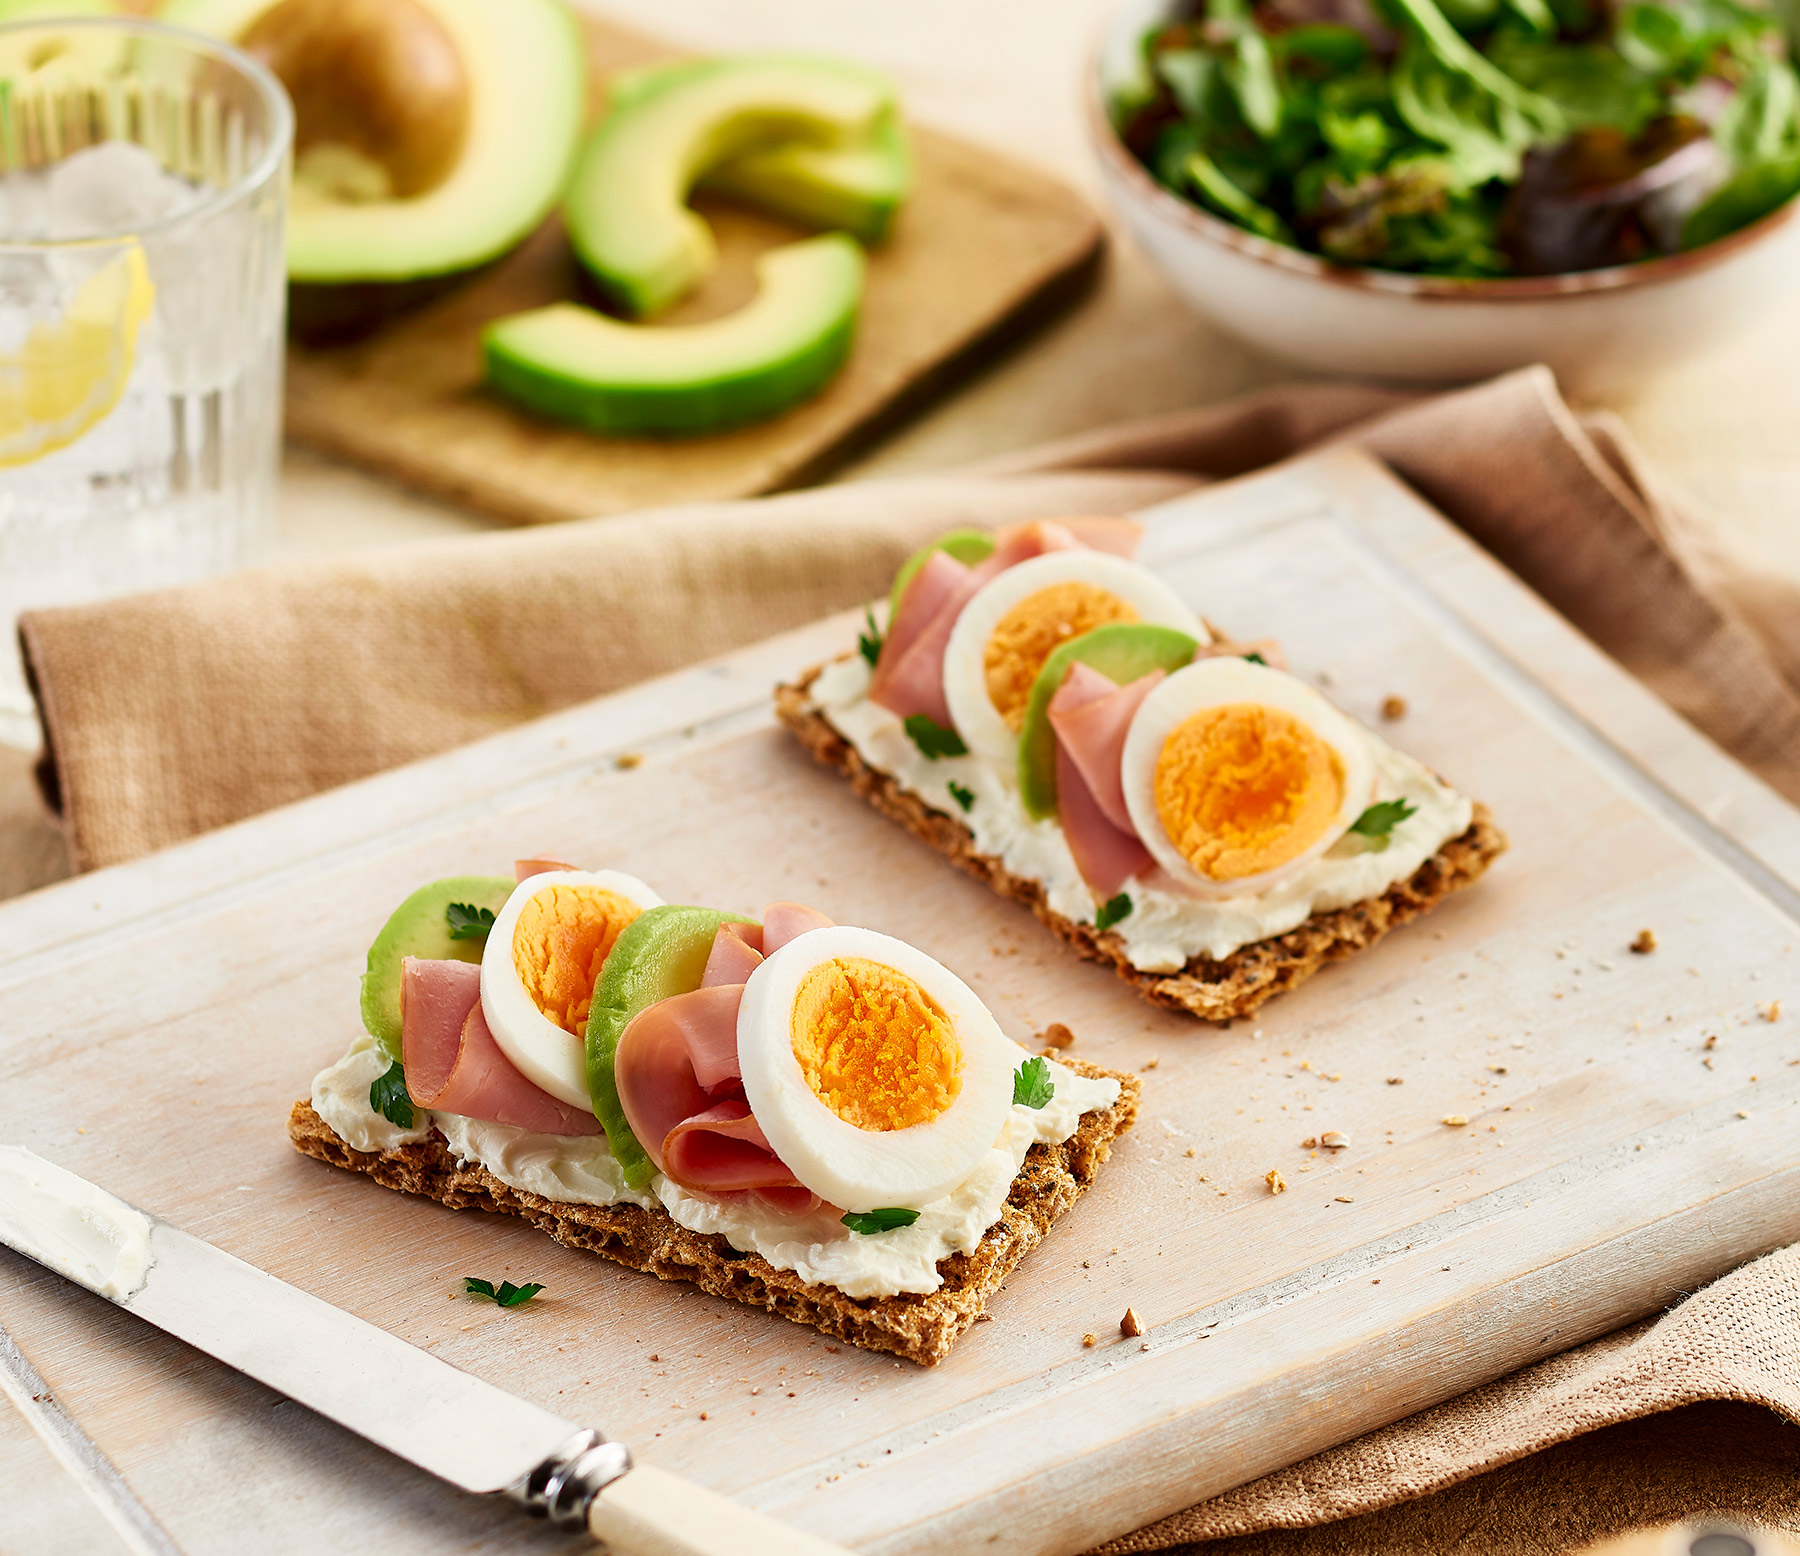 Philadelphia, ham and avocado on Ryvita